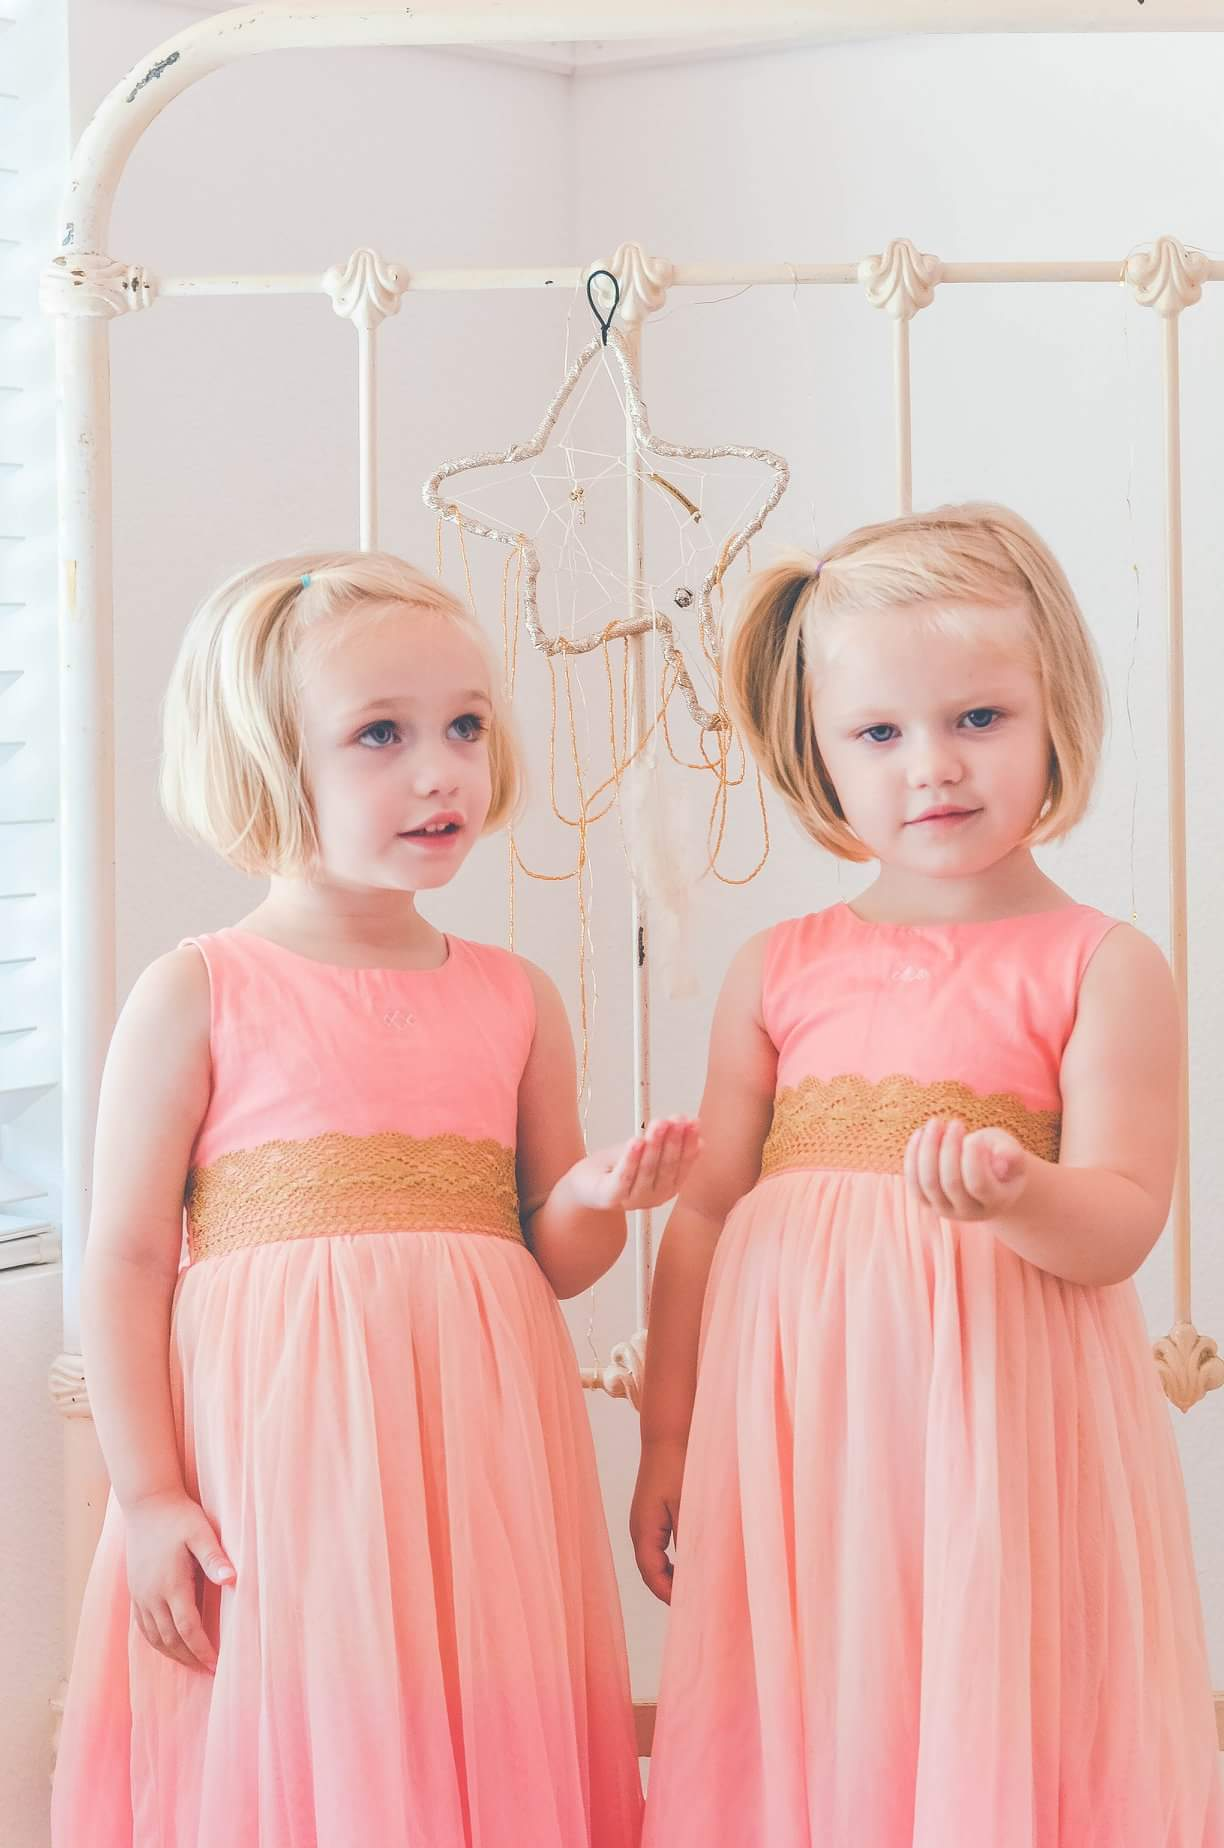 twins magic childhood little ladies princesstwinkle twinkle gold star dreamcatcher dream catcher dreamer boho bohemian sparkle glitter lsdreams l.s dreams